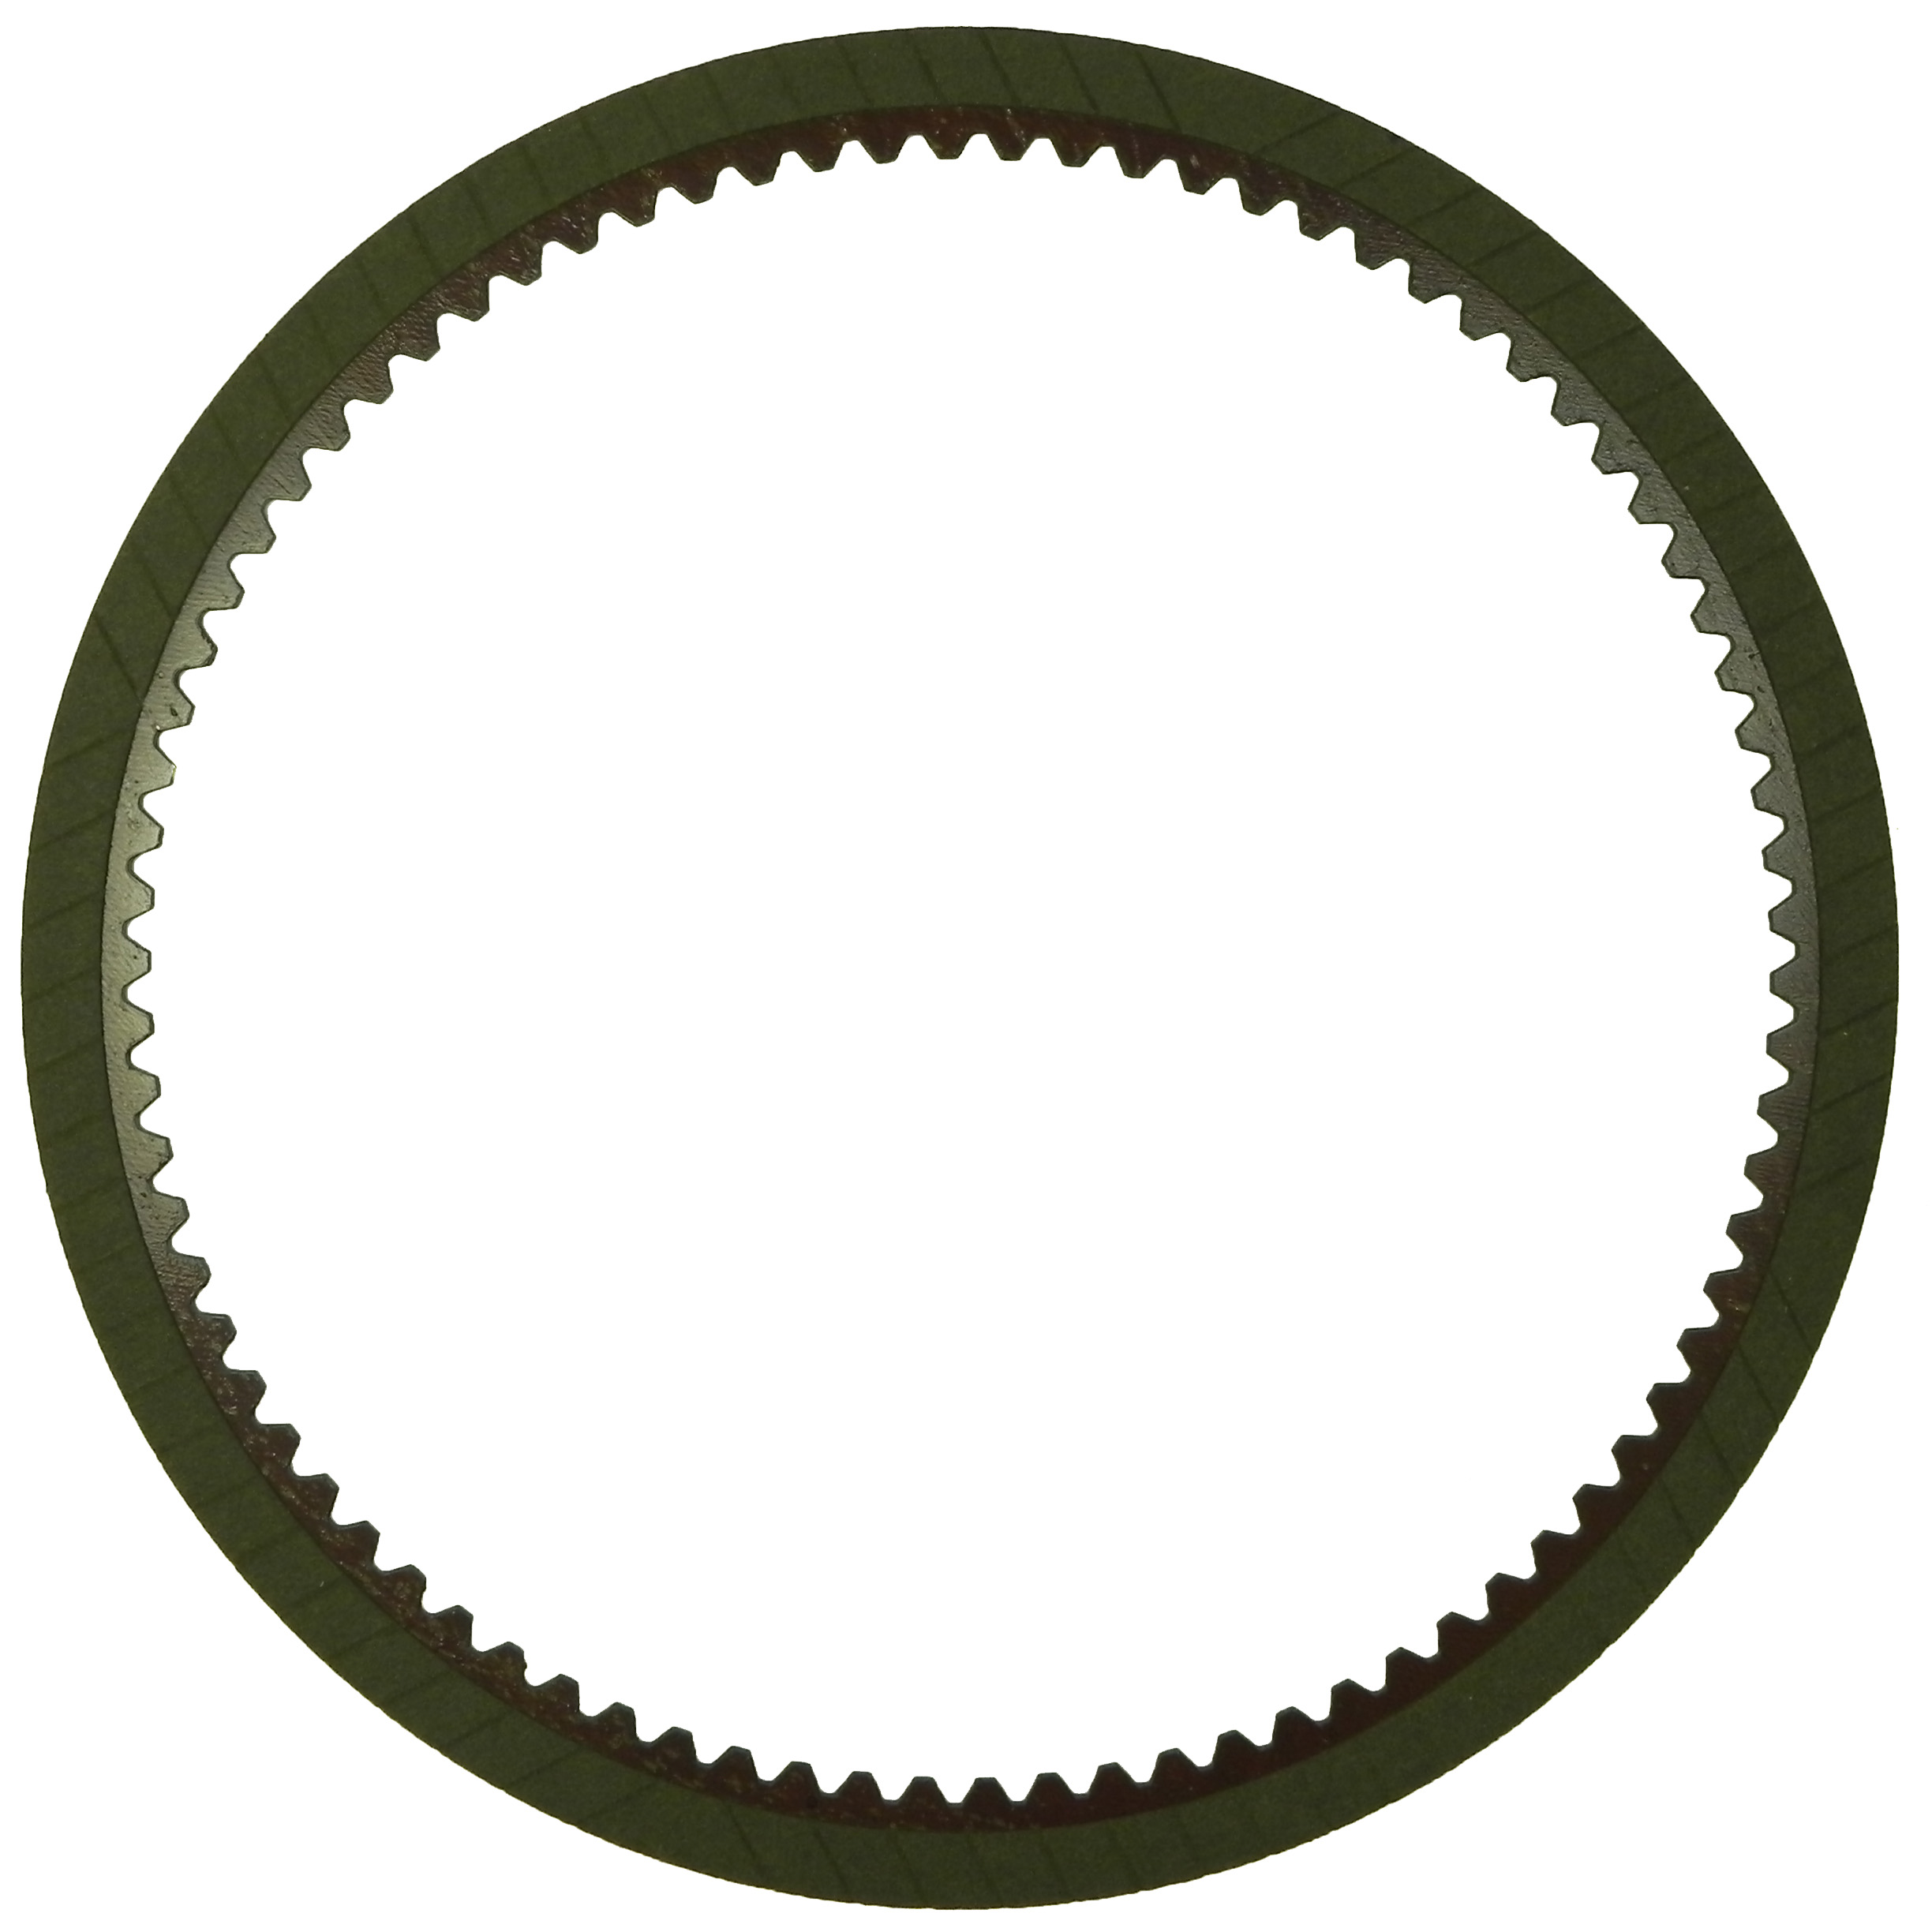 R810885 | 1995-ON Friction Clutch Plate High Energy C6 Clutch High Energy